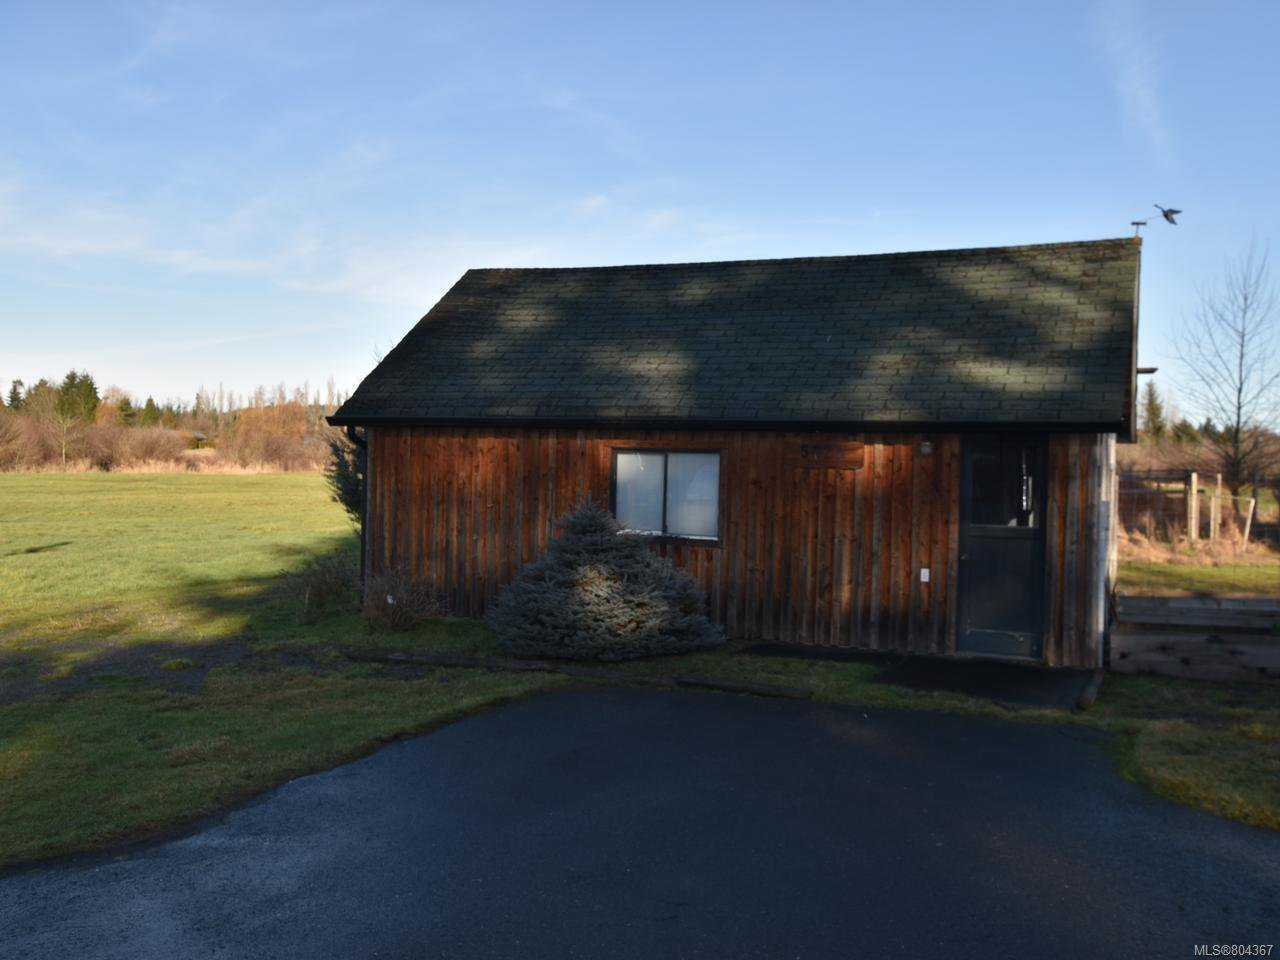 Photo 5: Photos: 5028 Headquarters Rd in COURTENAY: CV Courtenay North House for sale (Comox Valley)  : MLS®# 804367